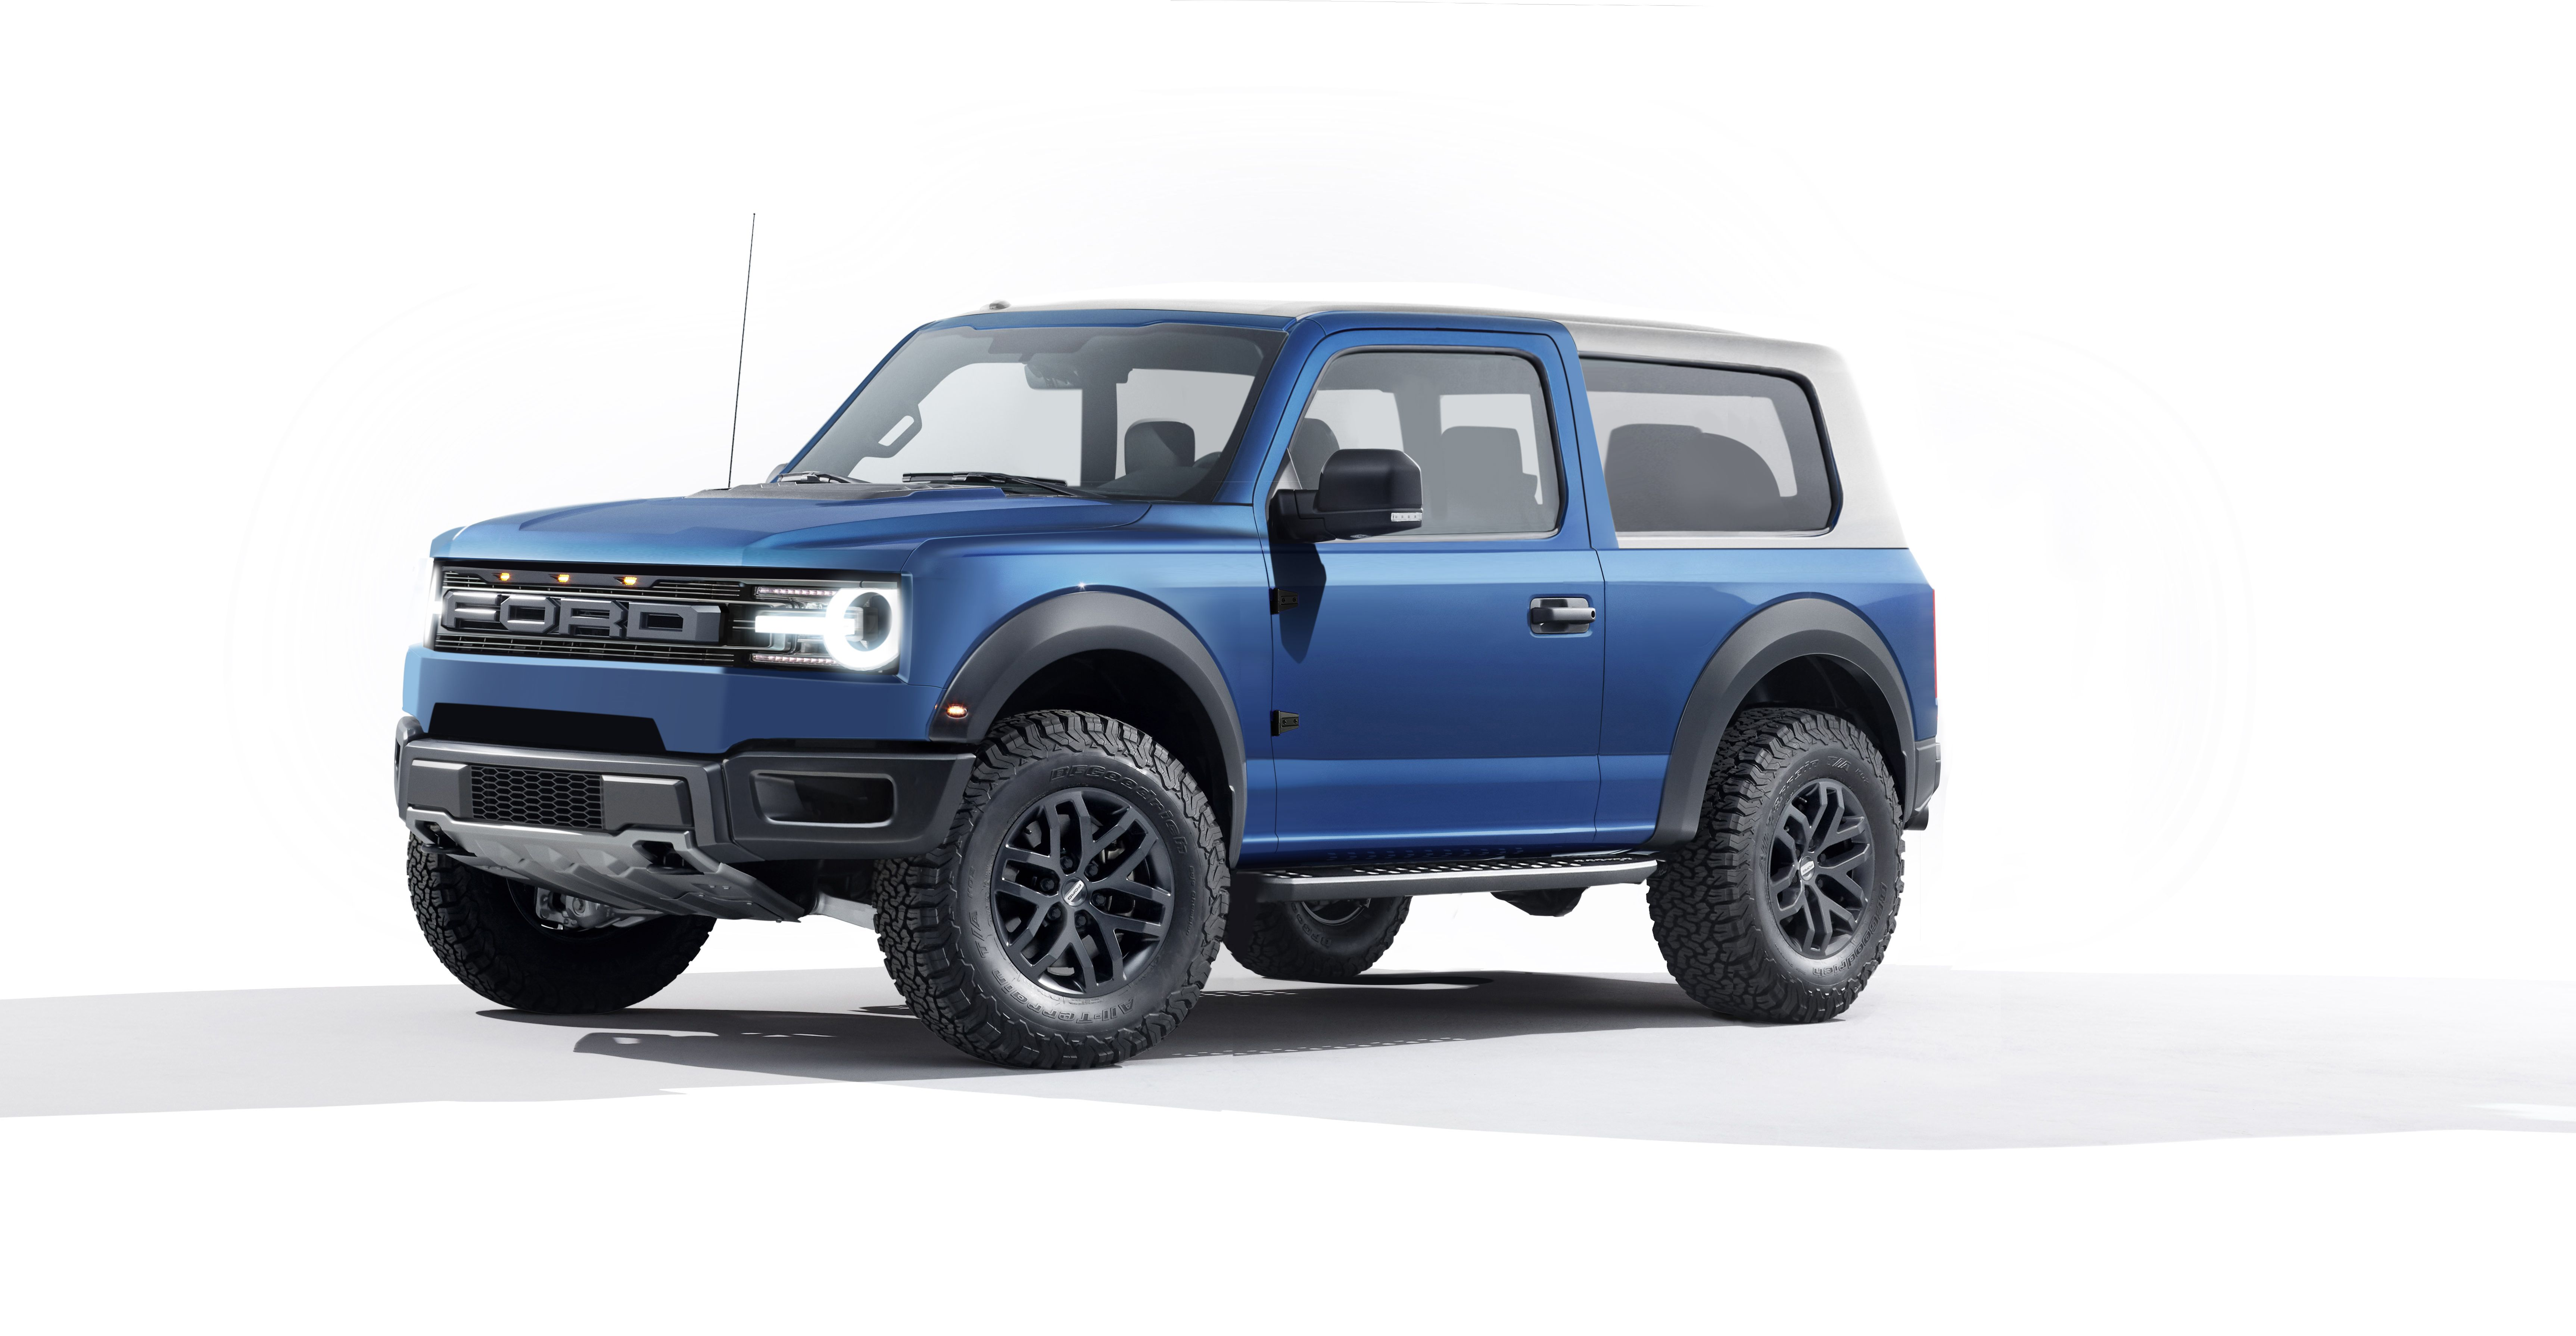 2021 Ford Bronco Confirmed What We Know So Far